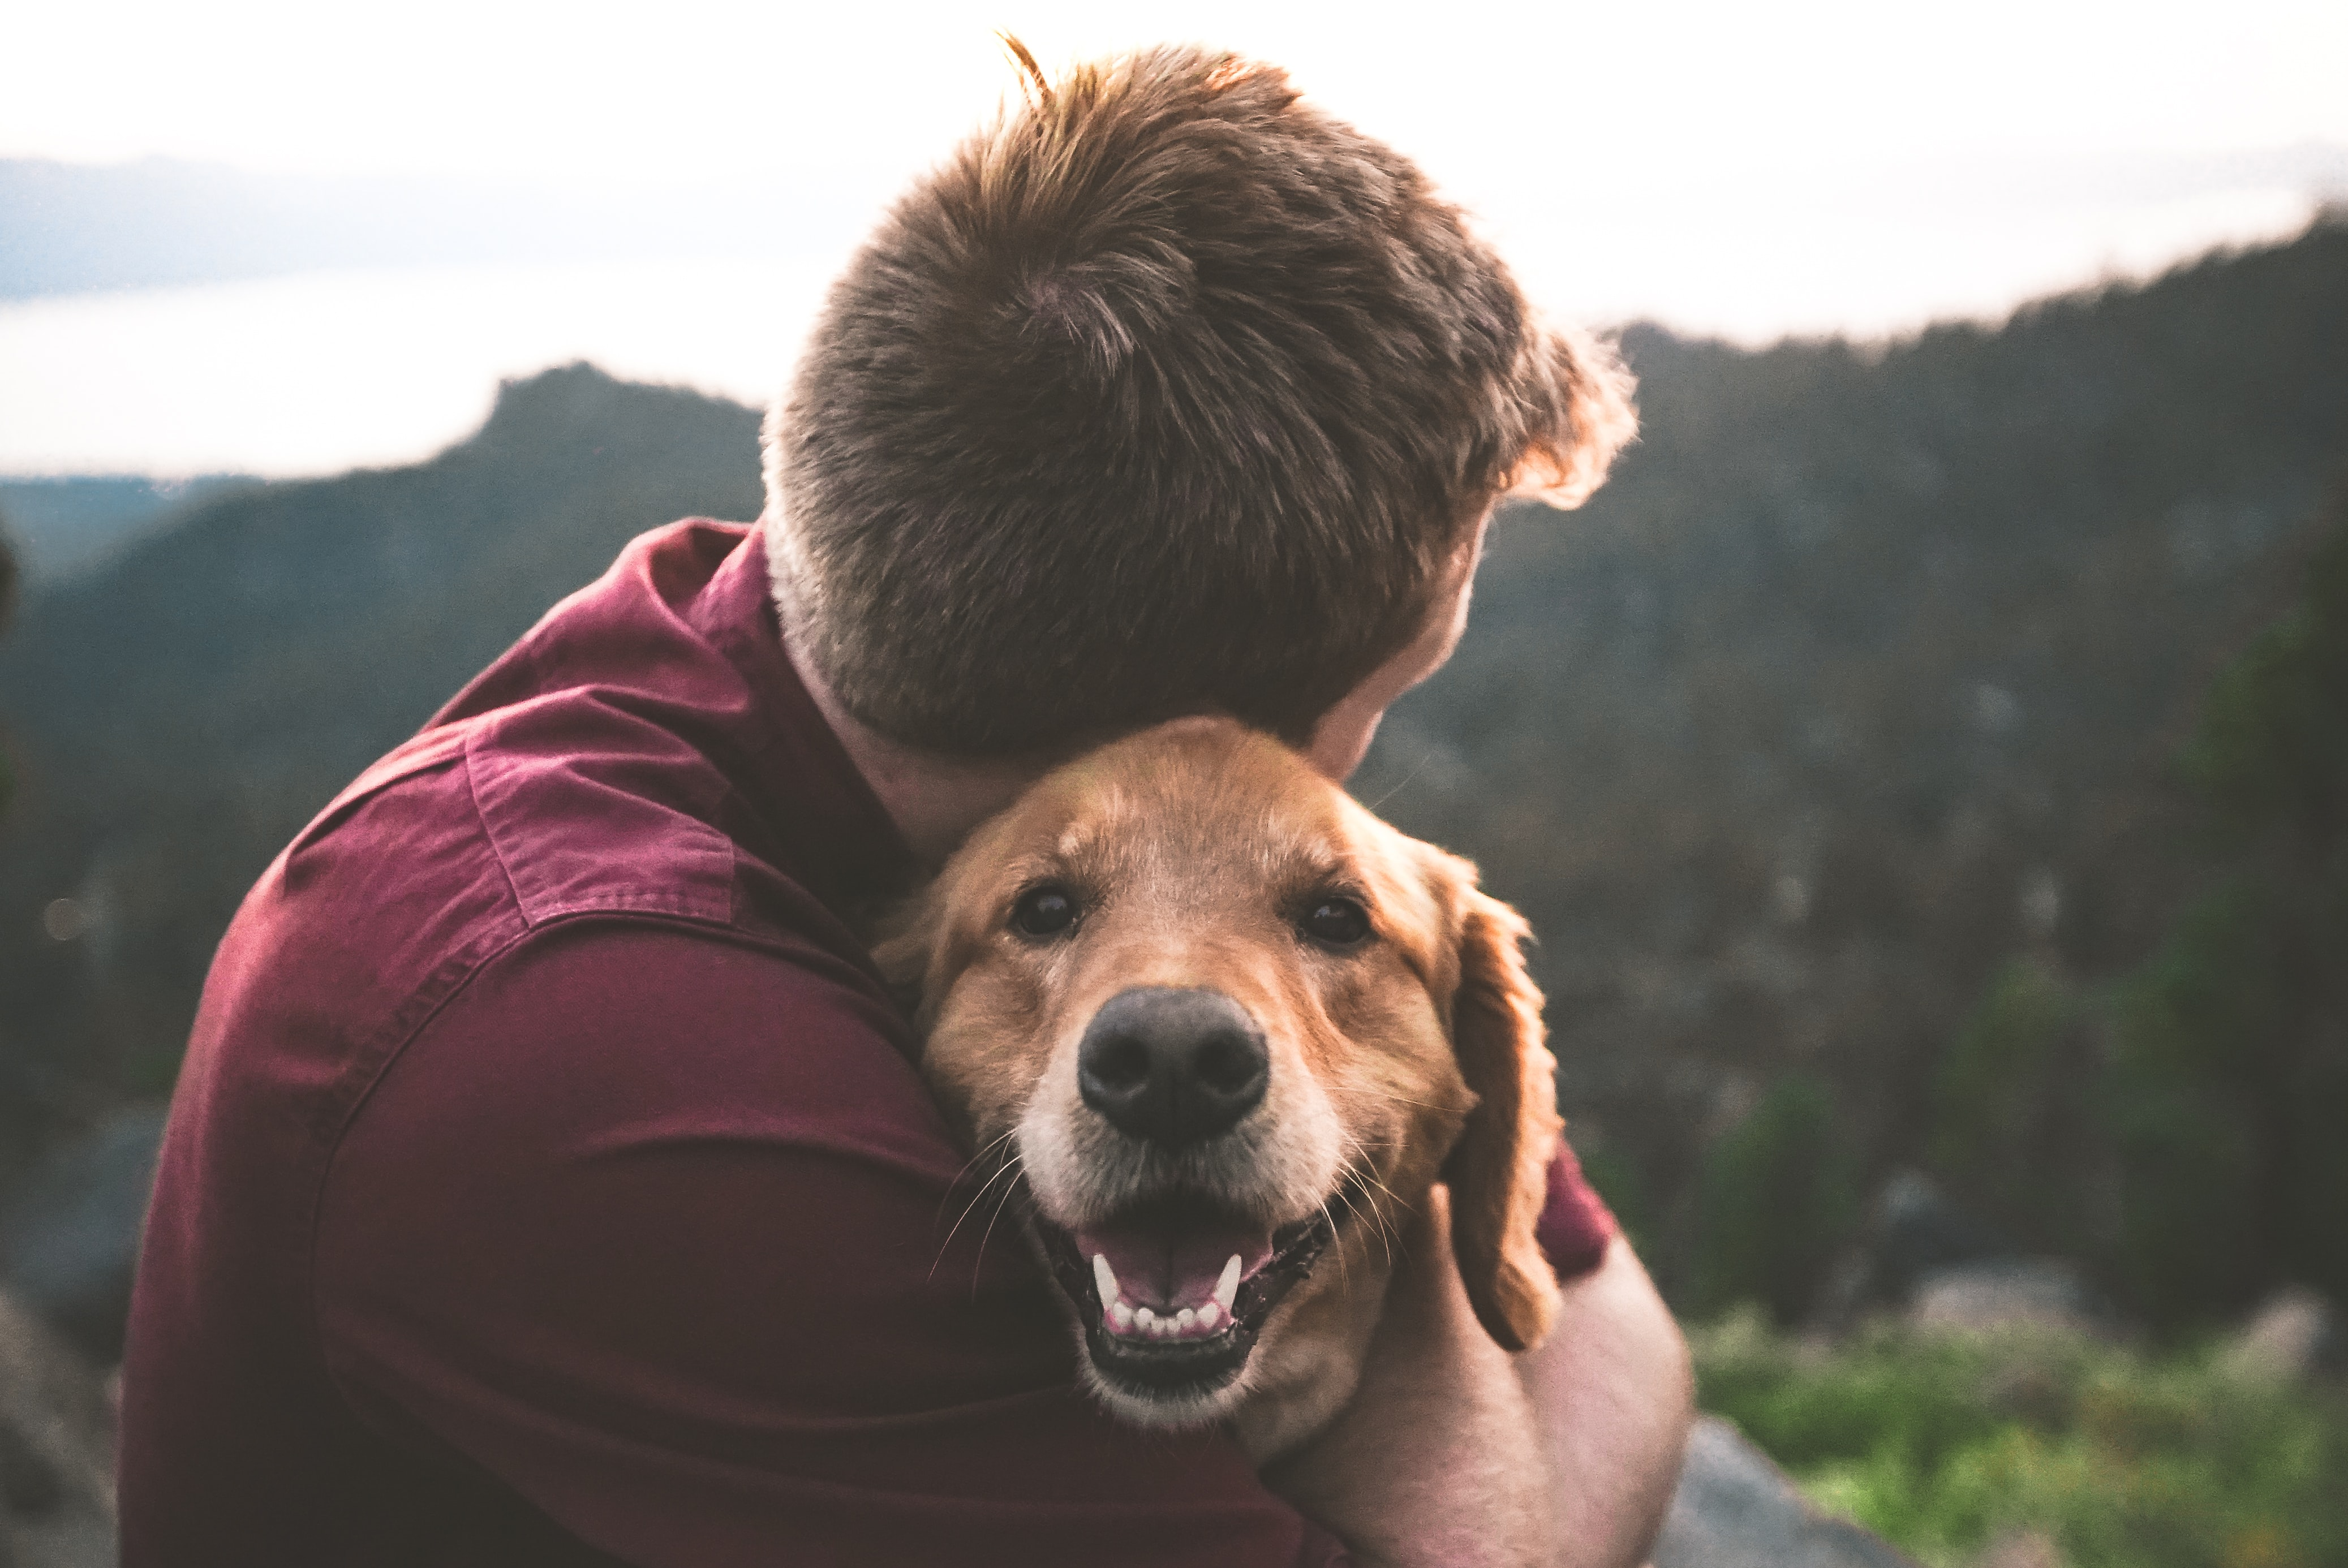 An owner hugging a dog and the dog has their eyes wide and mouth open.